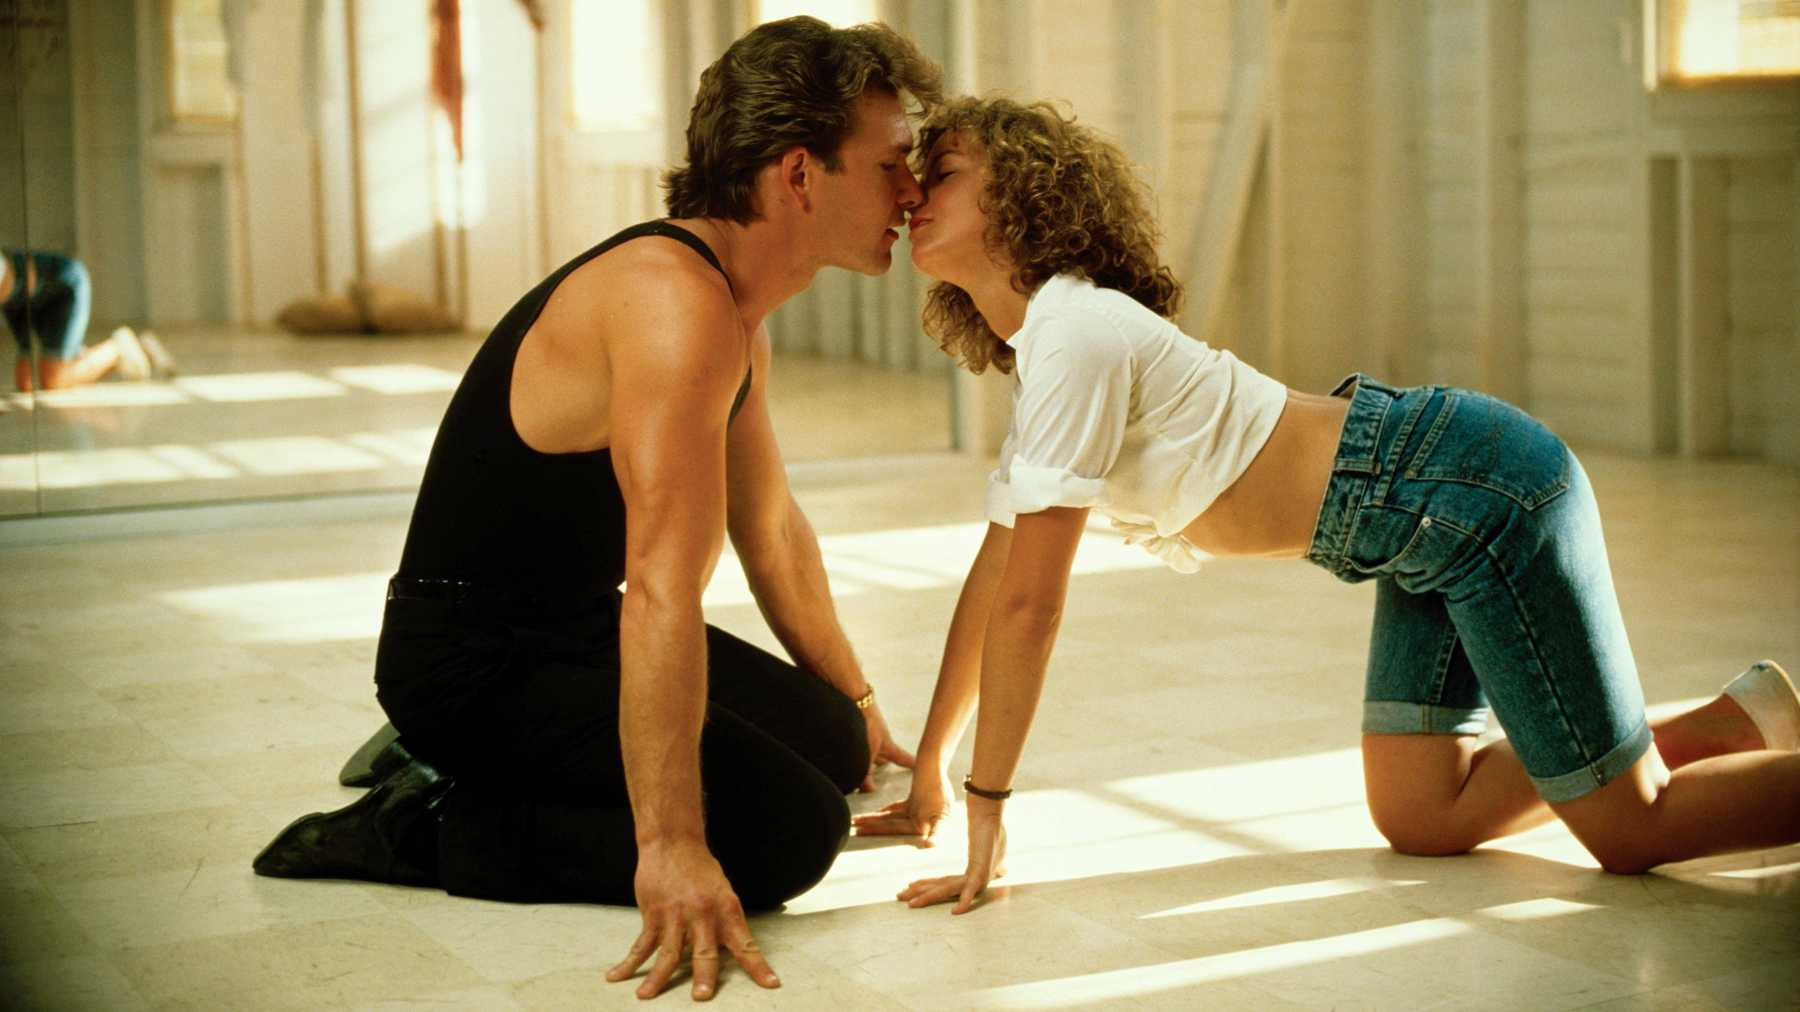 Dirty Dancing Movie Scene